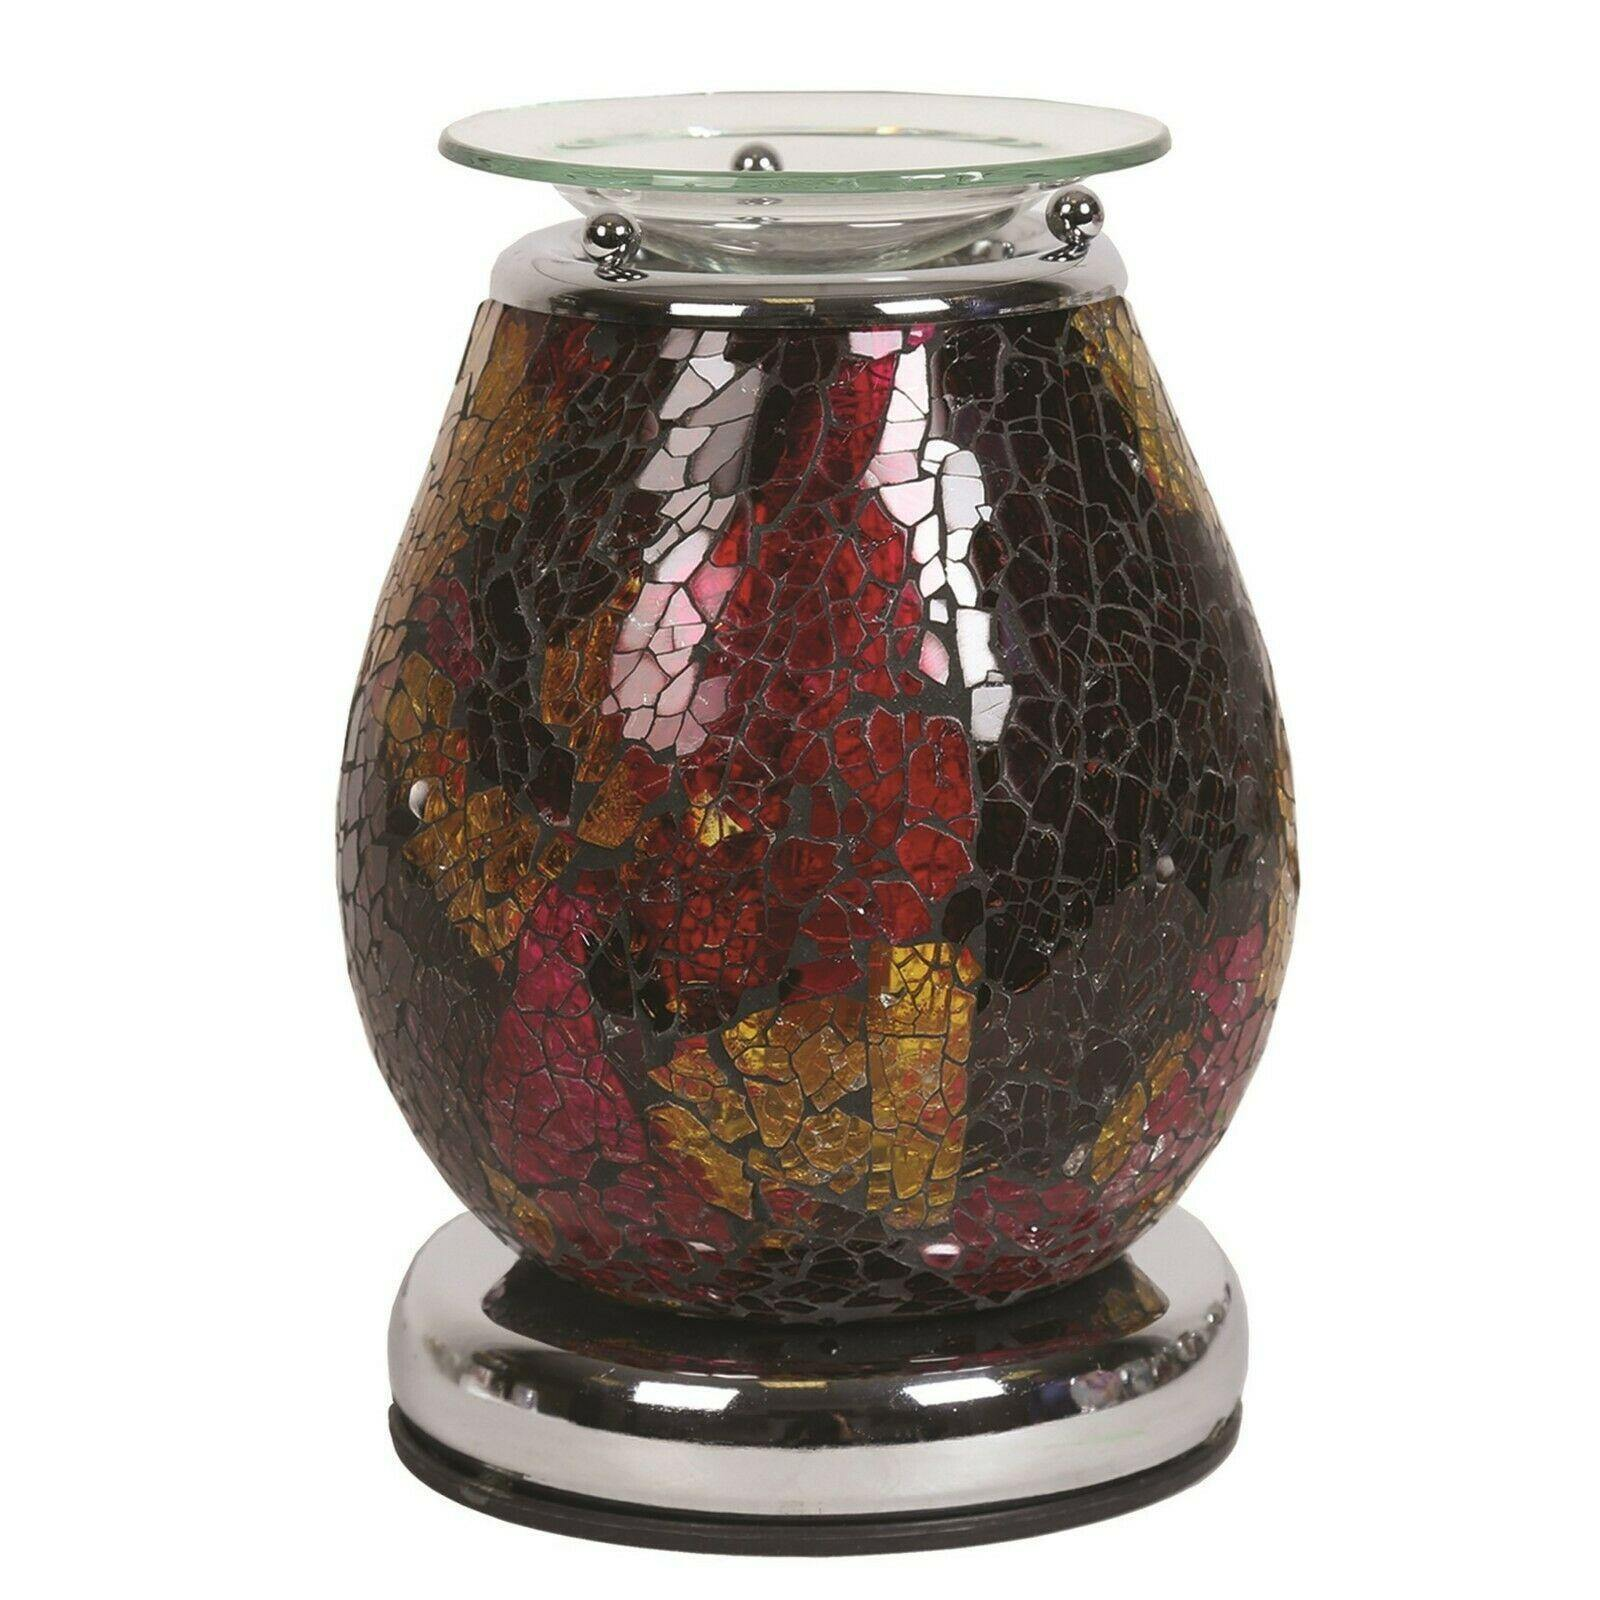 Aroma Accessories Neptune Mosaic Touch Electric Wax Melt Warmer - TOSYS Candles and Gifts